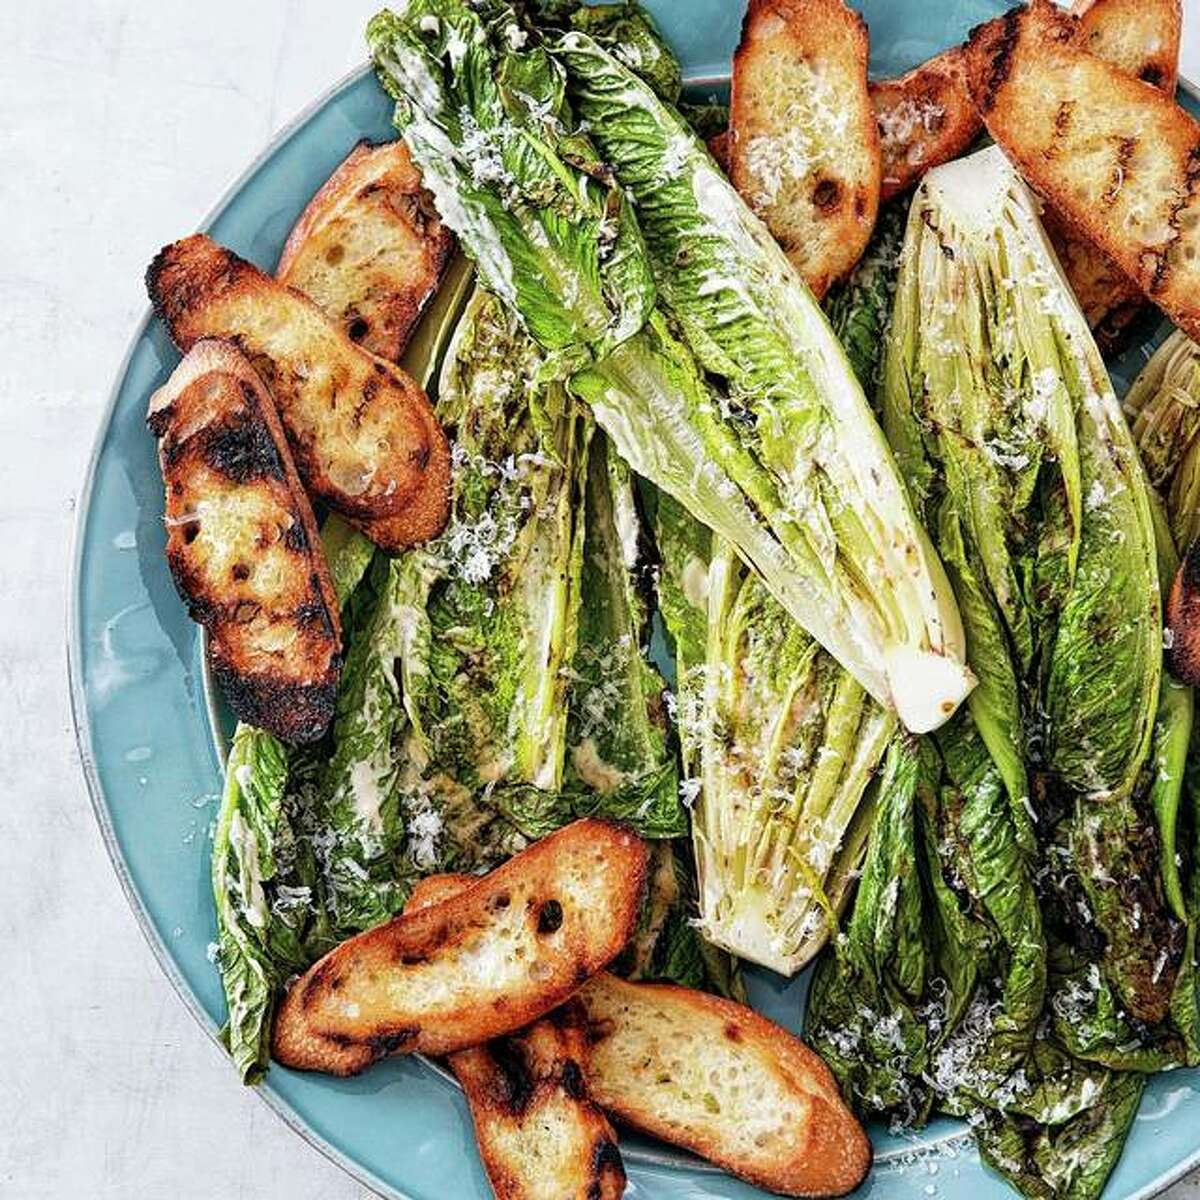 Grilling romaine lettuce adds smoky flavor to a traditional Caesar salad.